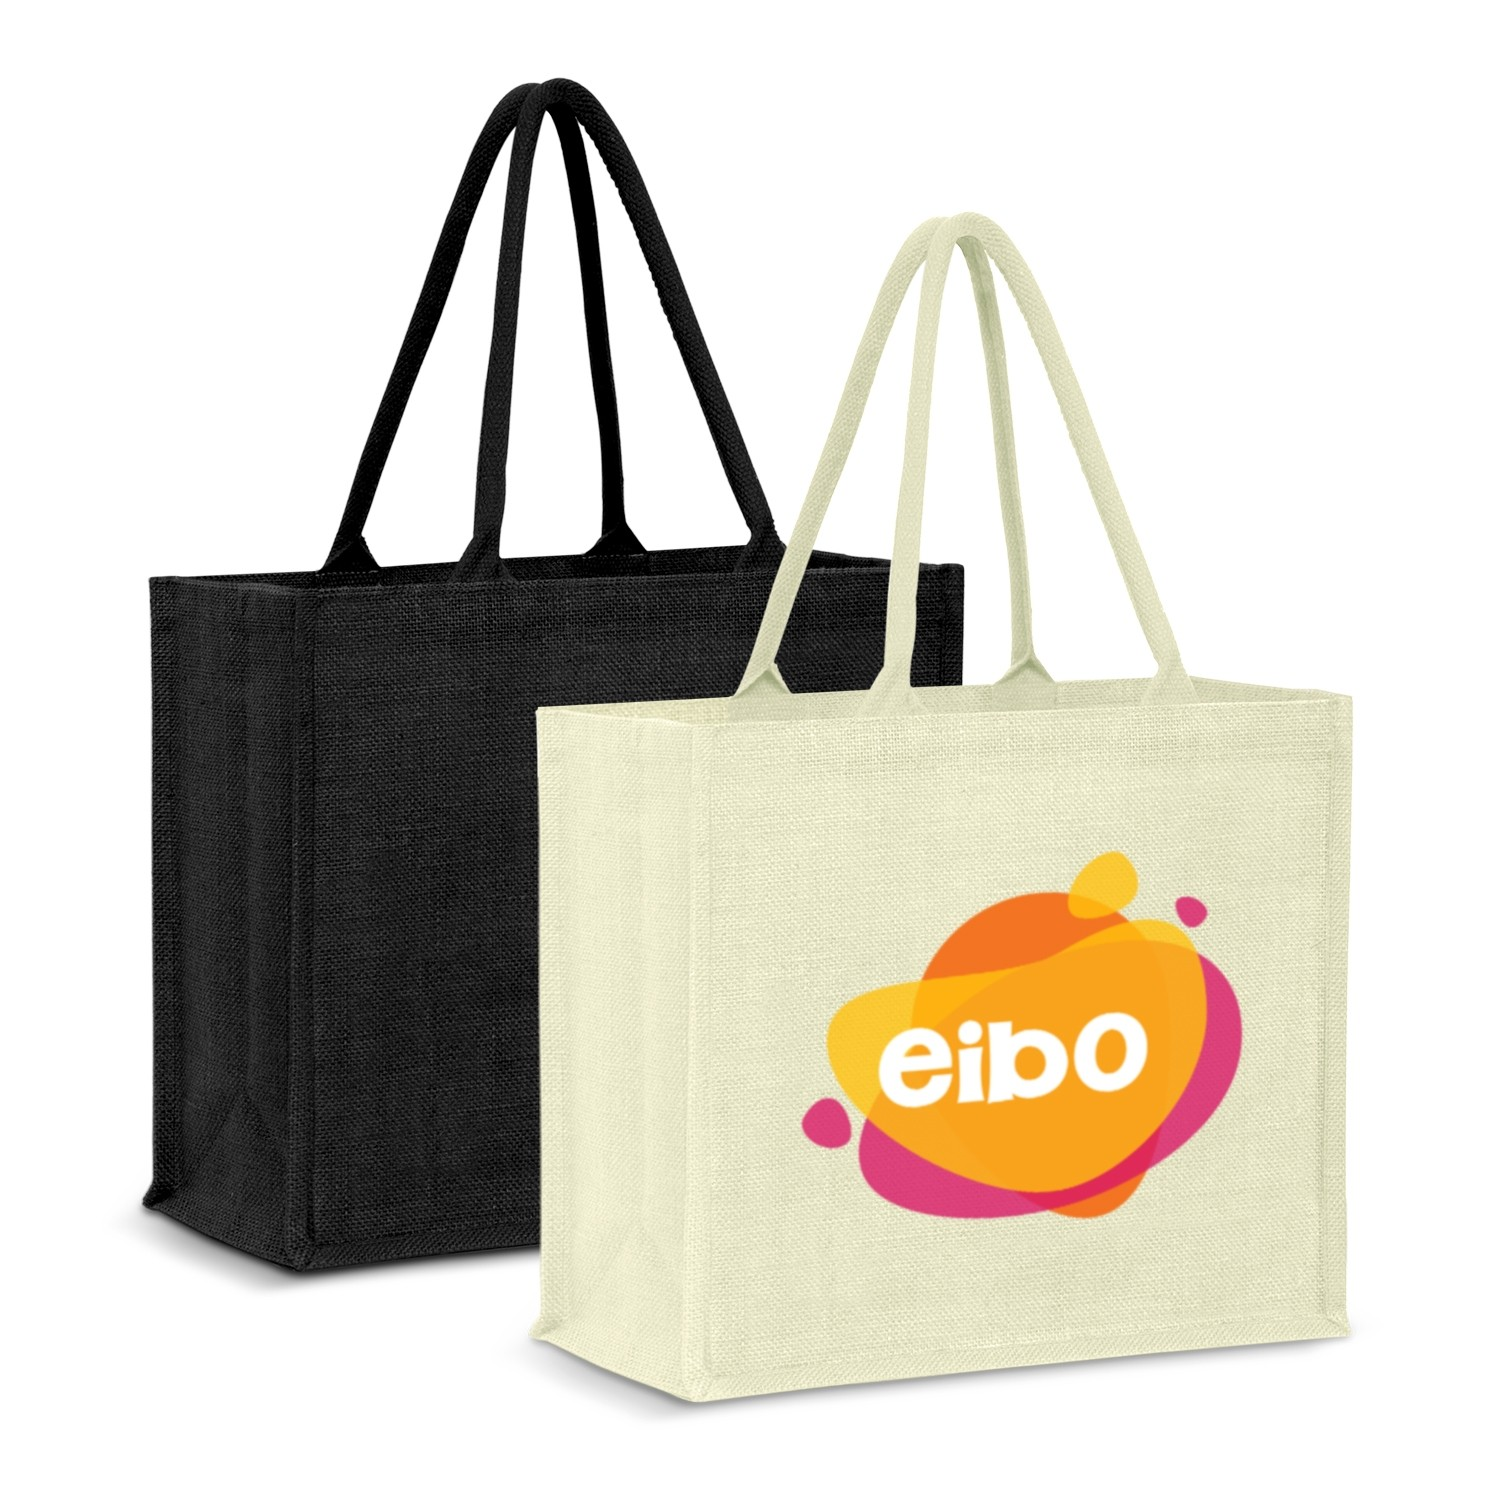 Colour Matched Modena Jute Tote Bag custom branded-30